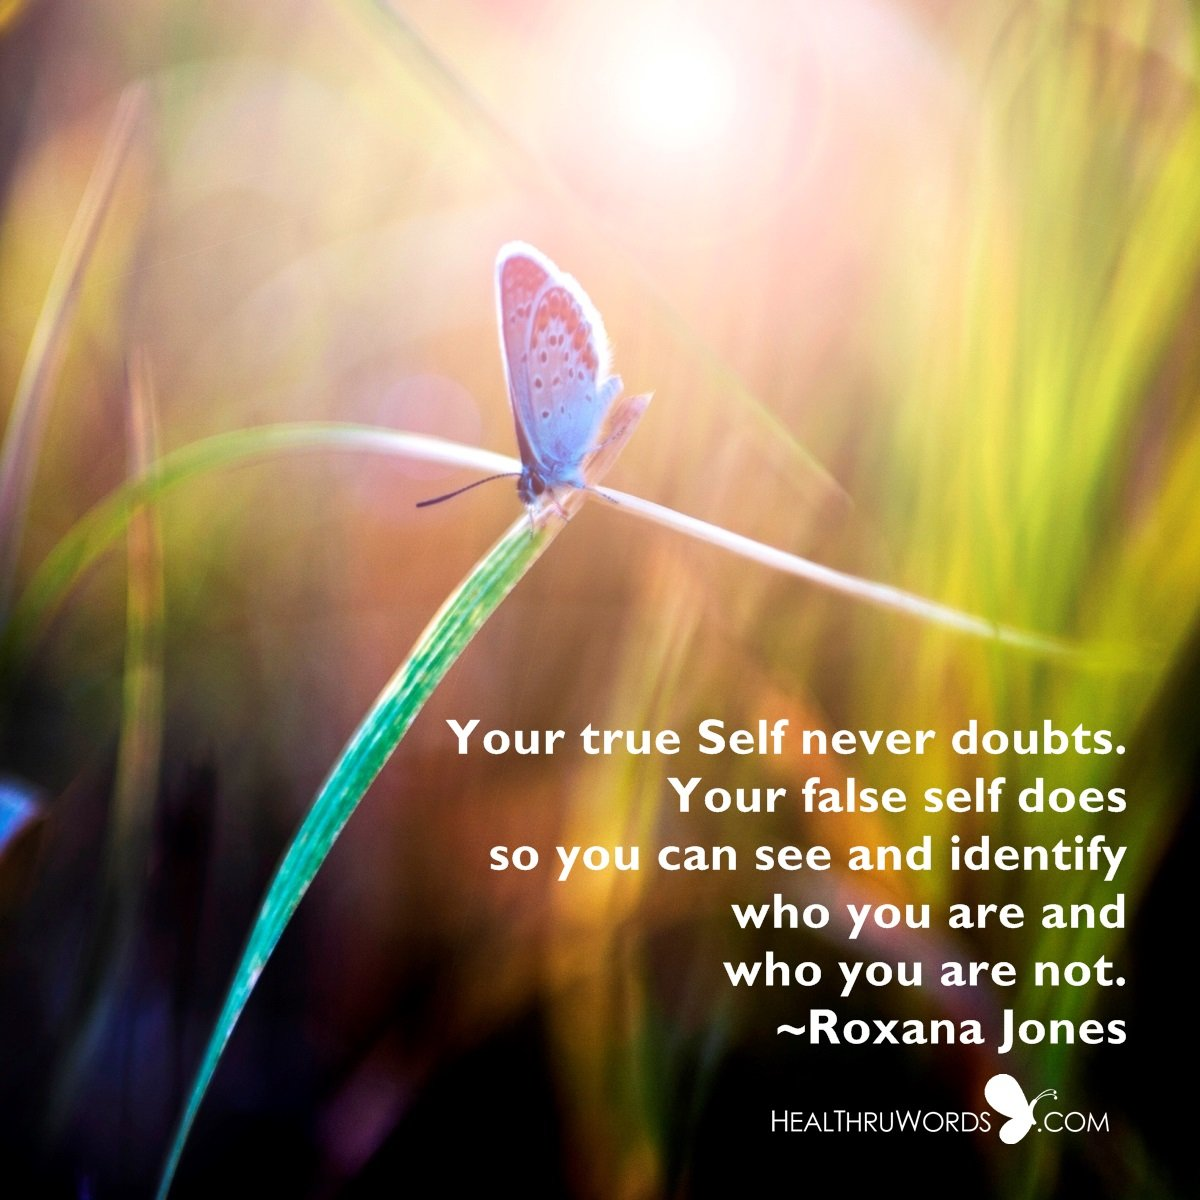 Inspirational Image: Your Two Selves